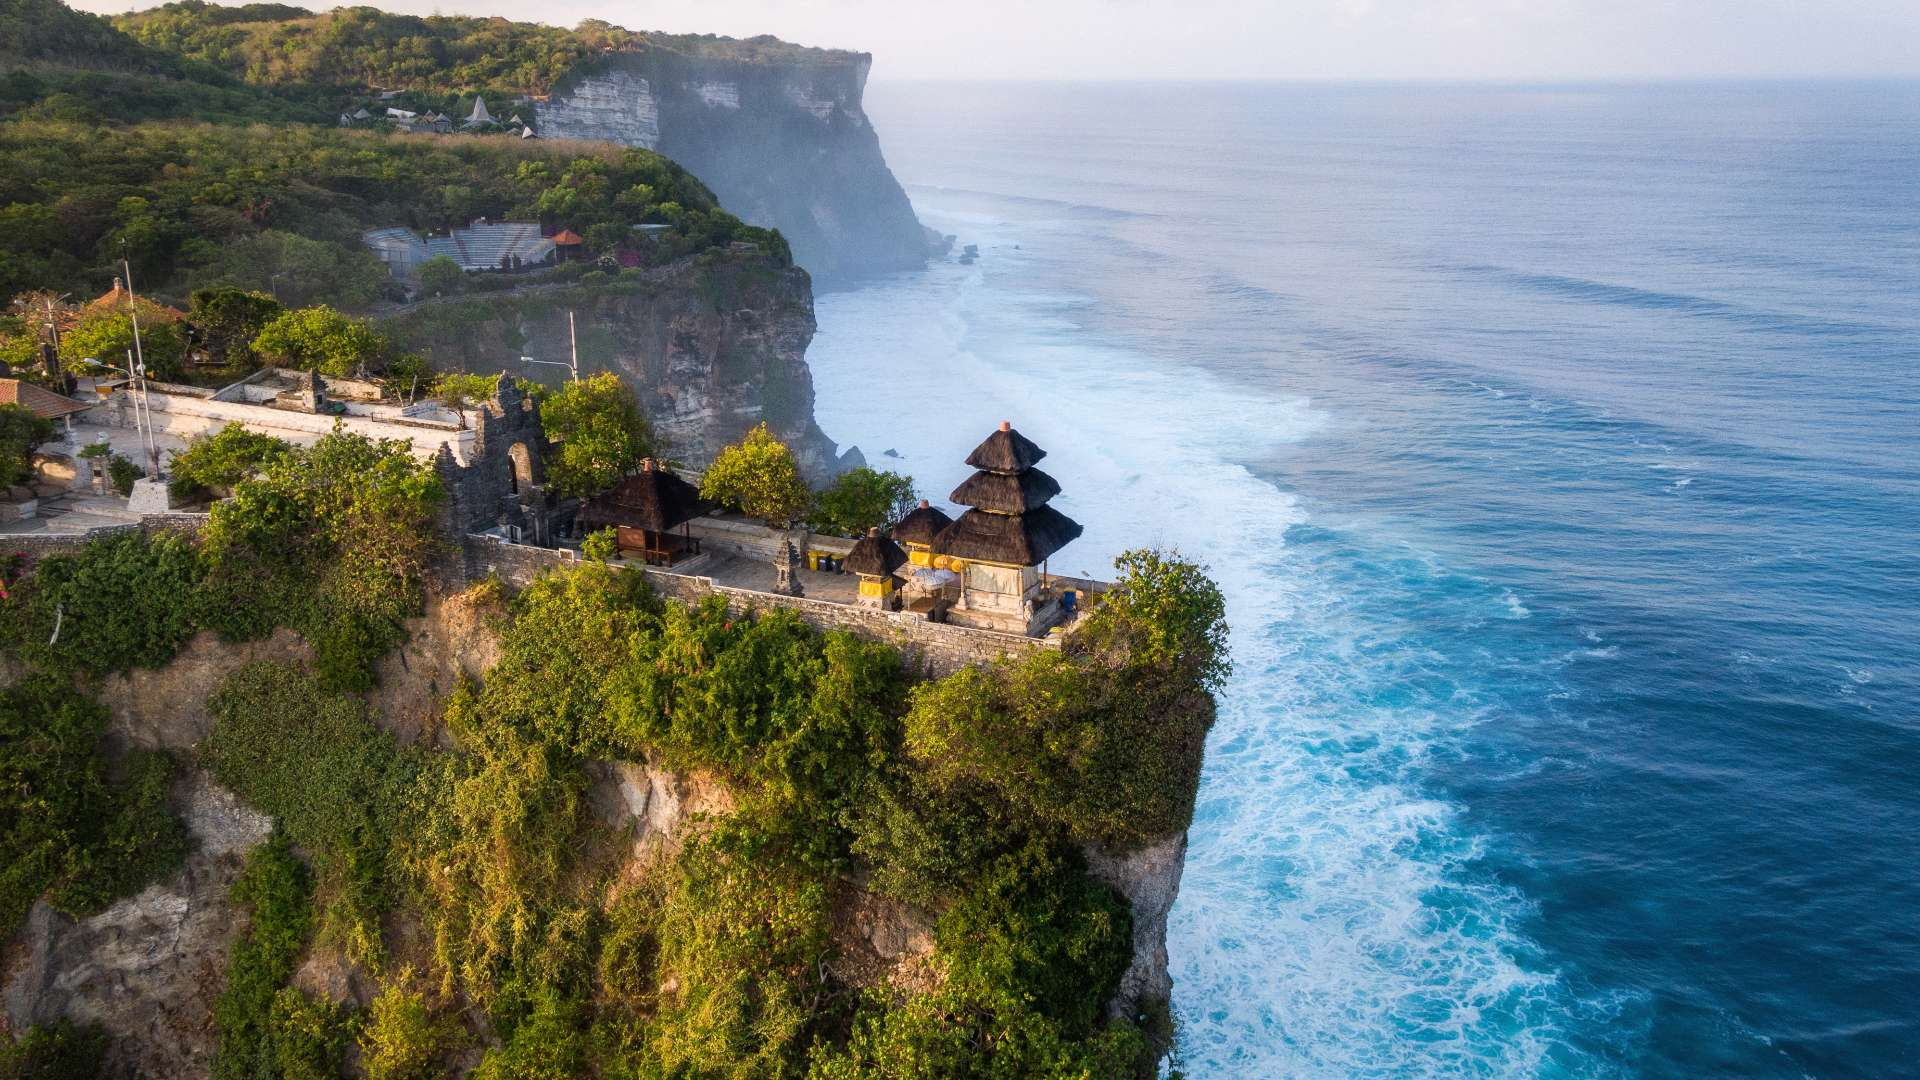 Uluwatu temple and ocean cliff